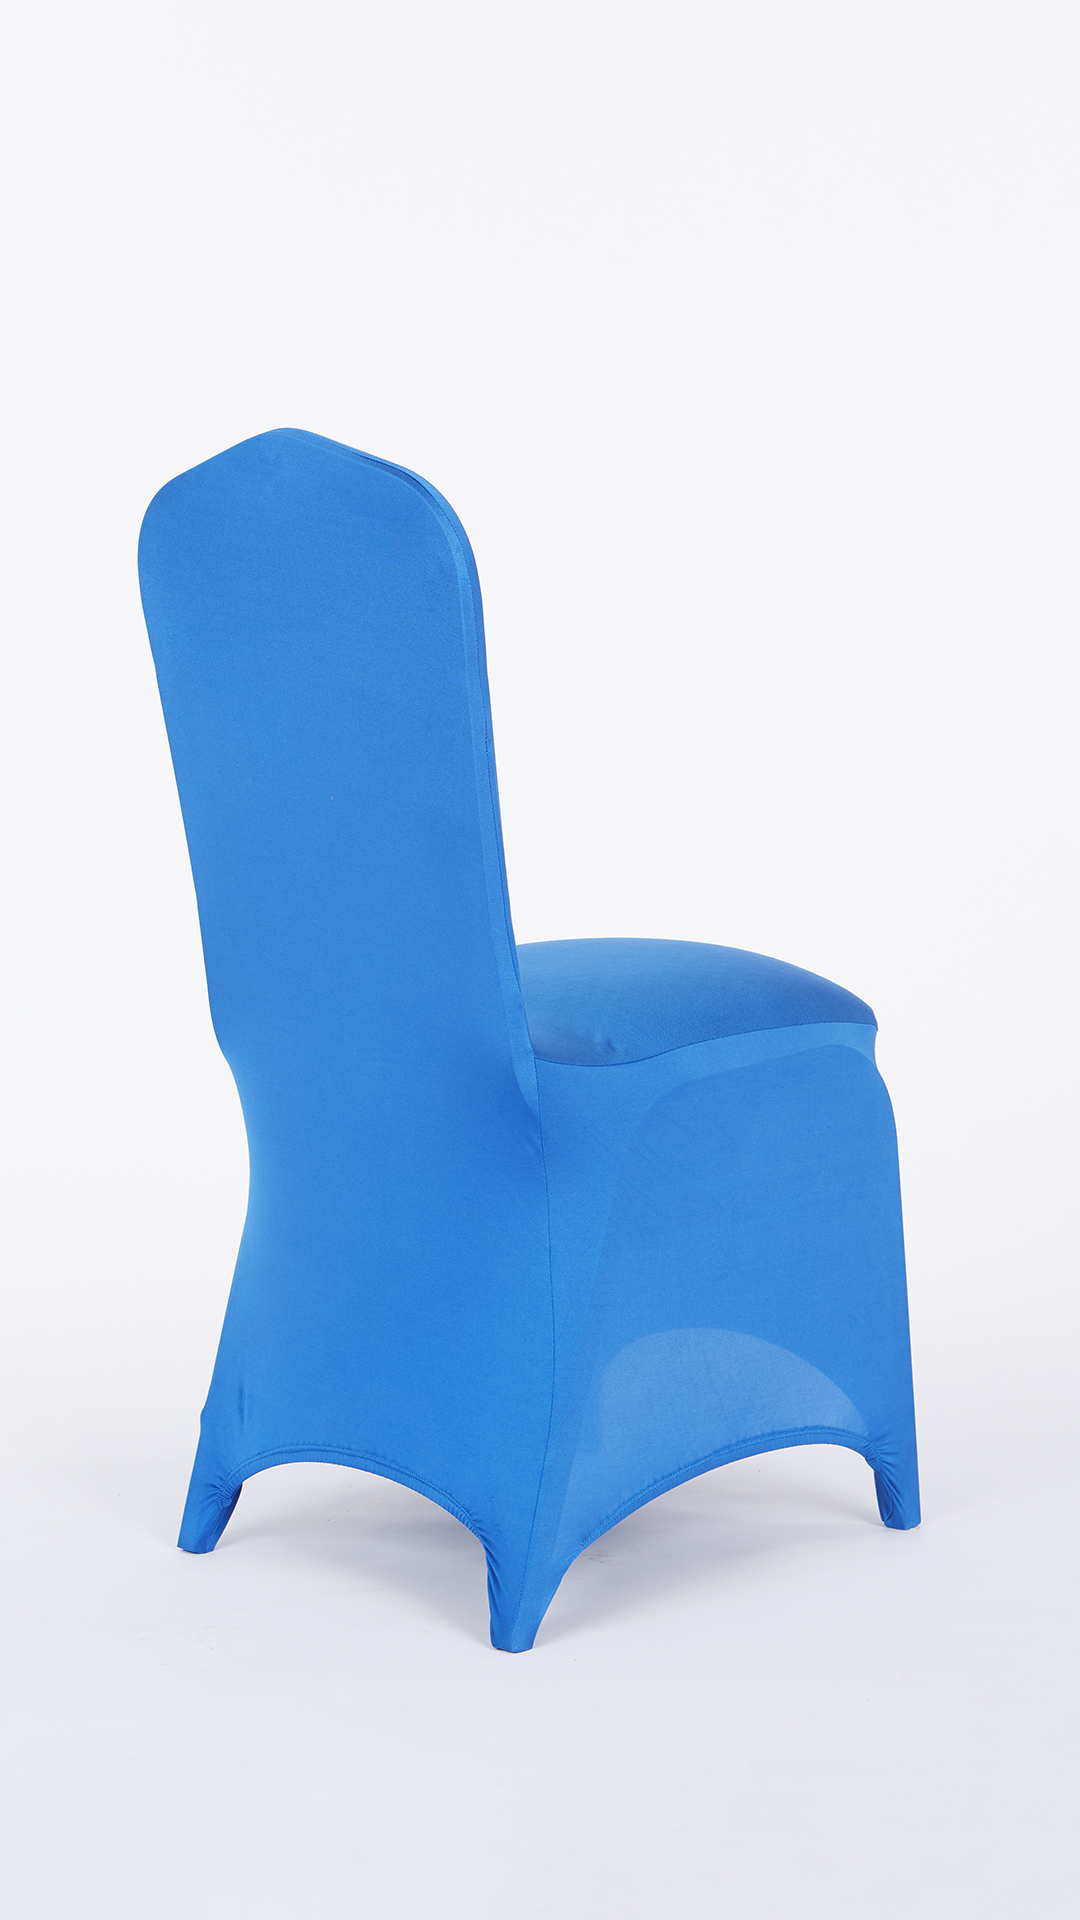 Royal Blue Chair Decor Pink Living Room: Royal Blue Stretch Chair Cover